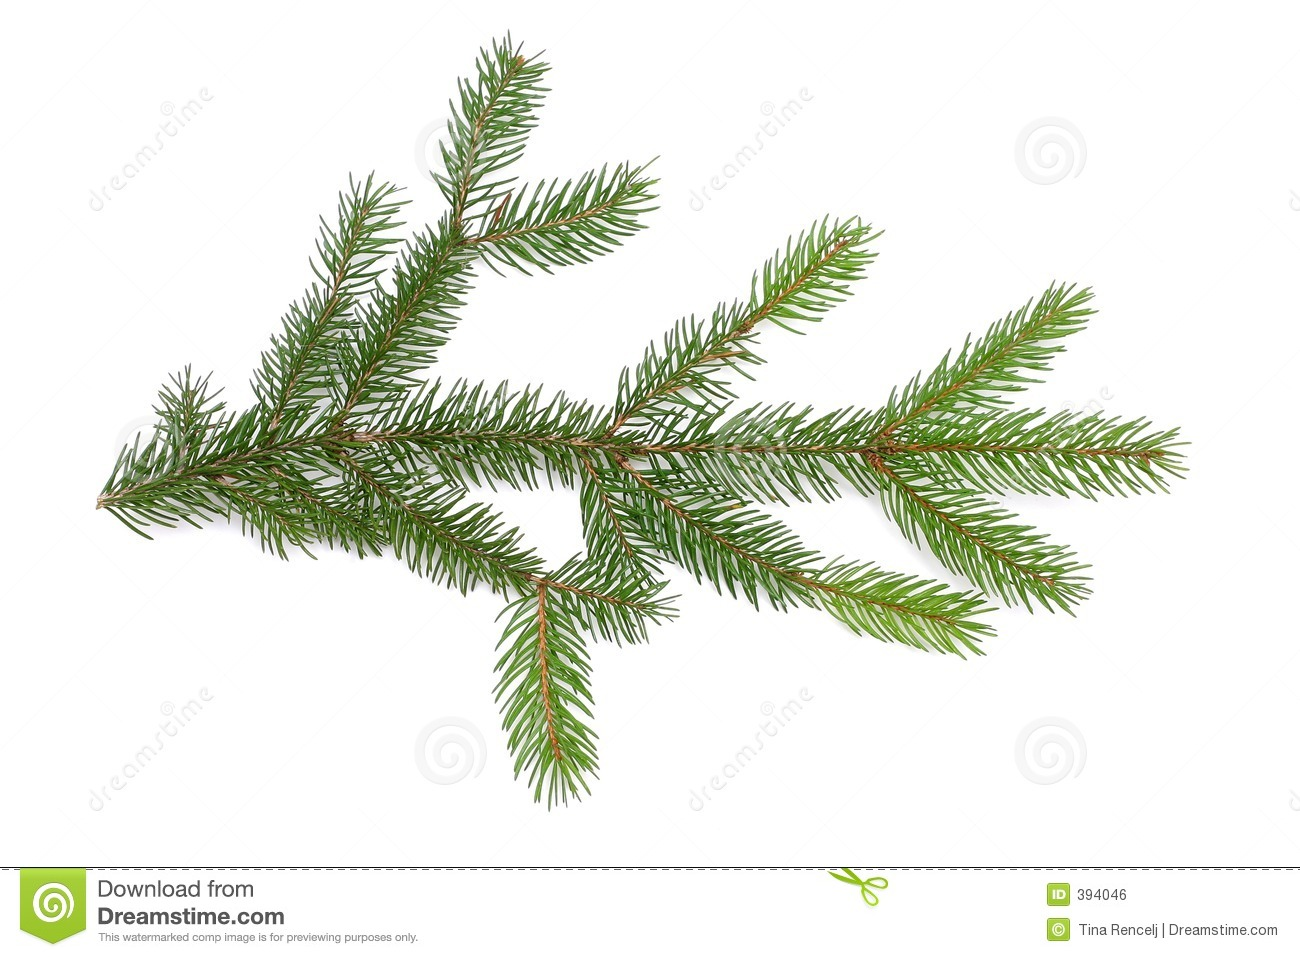 Pine Branch Royalty Free Stock Image - Image: 394046